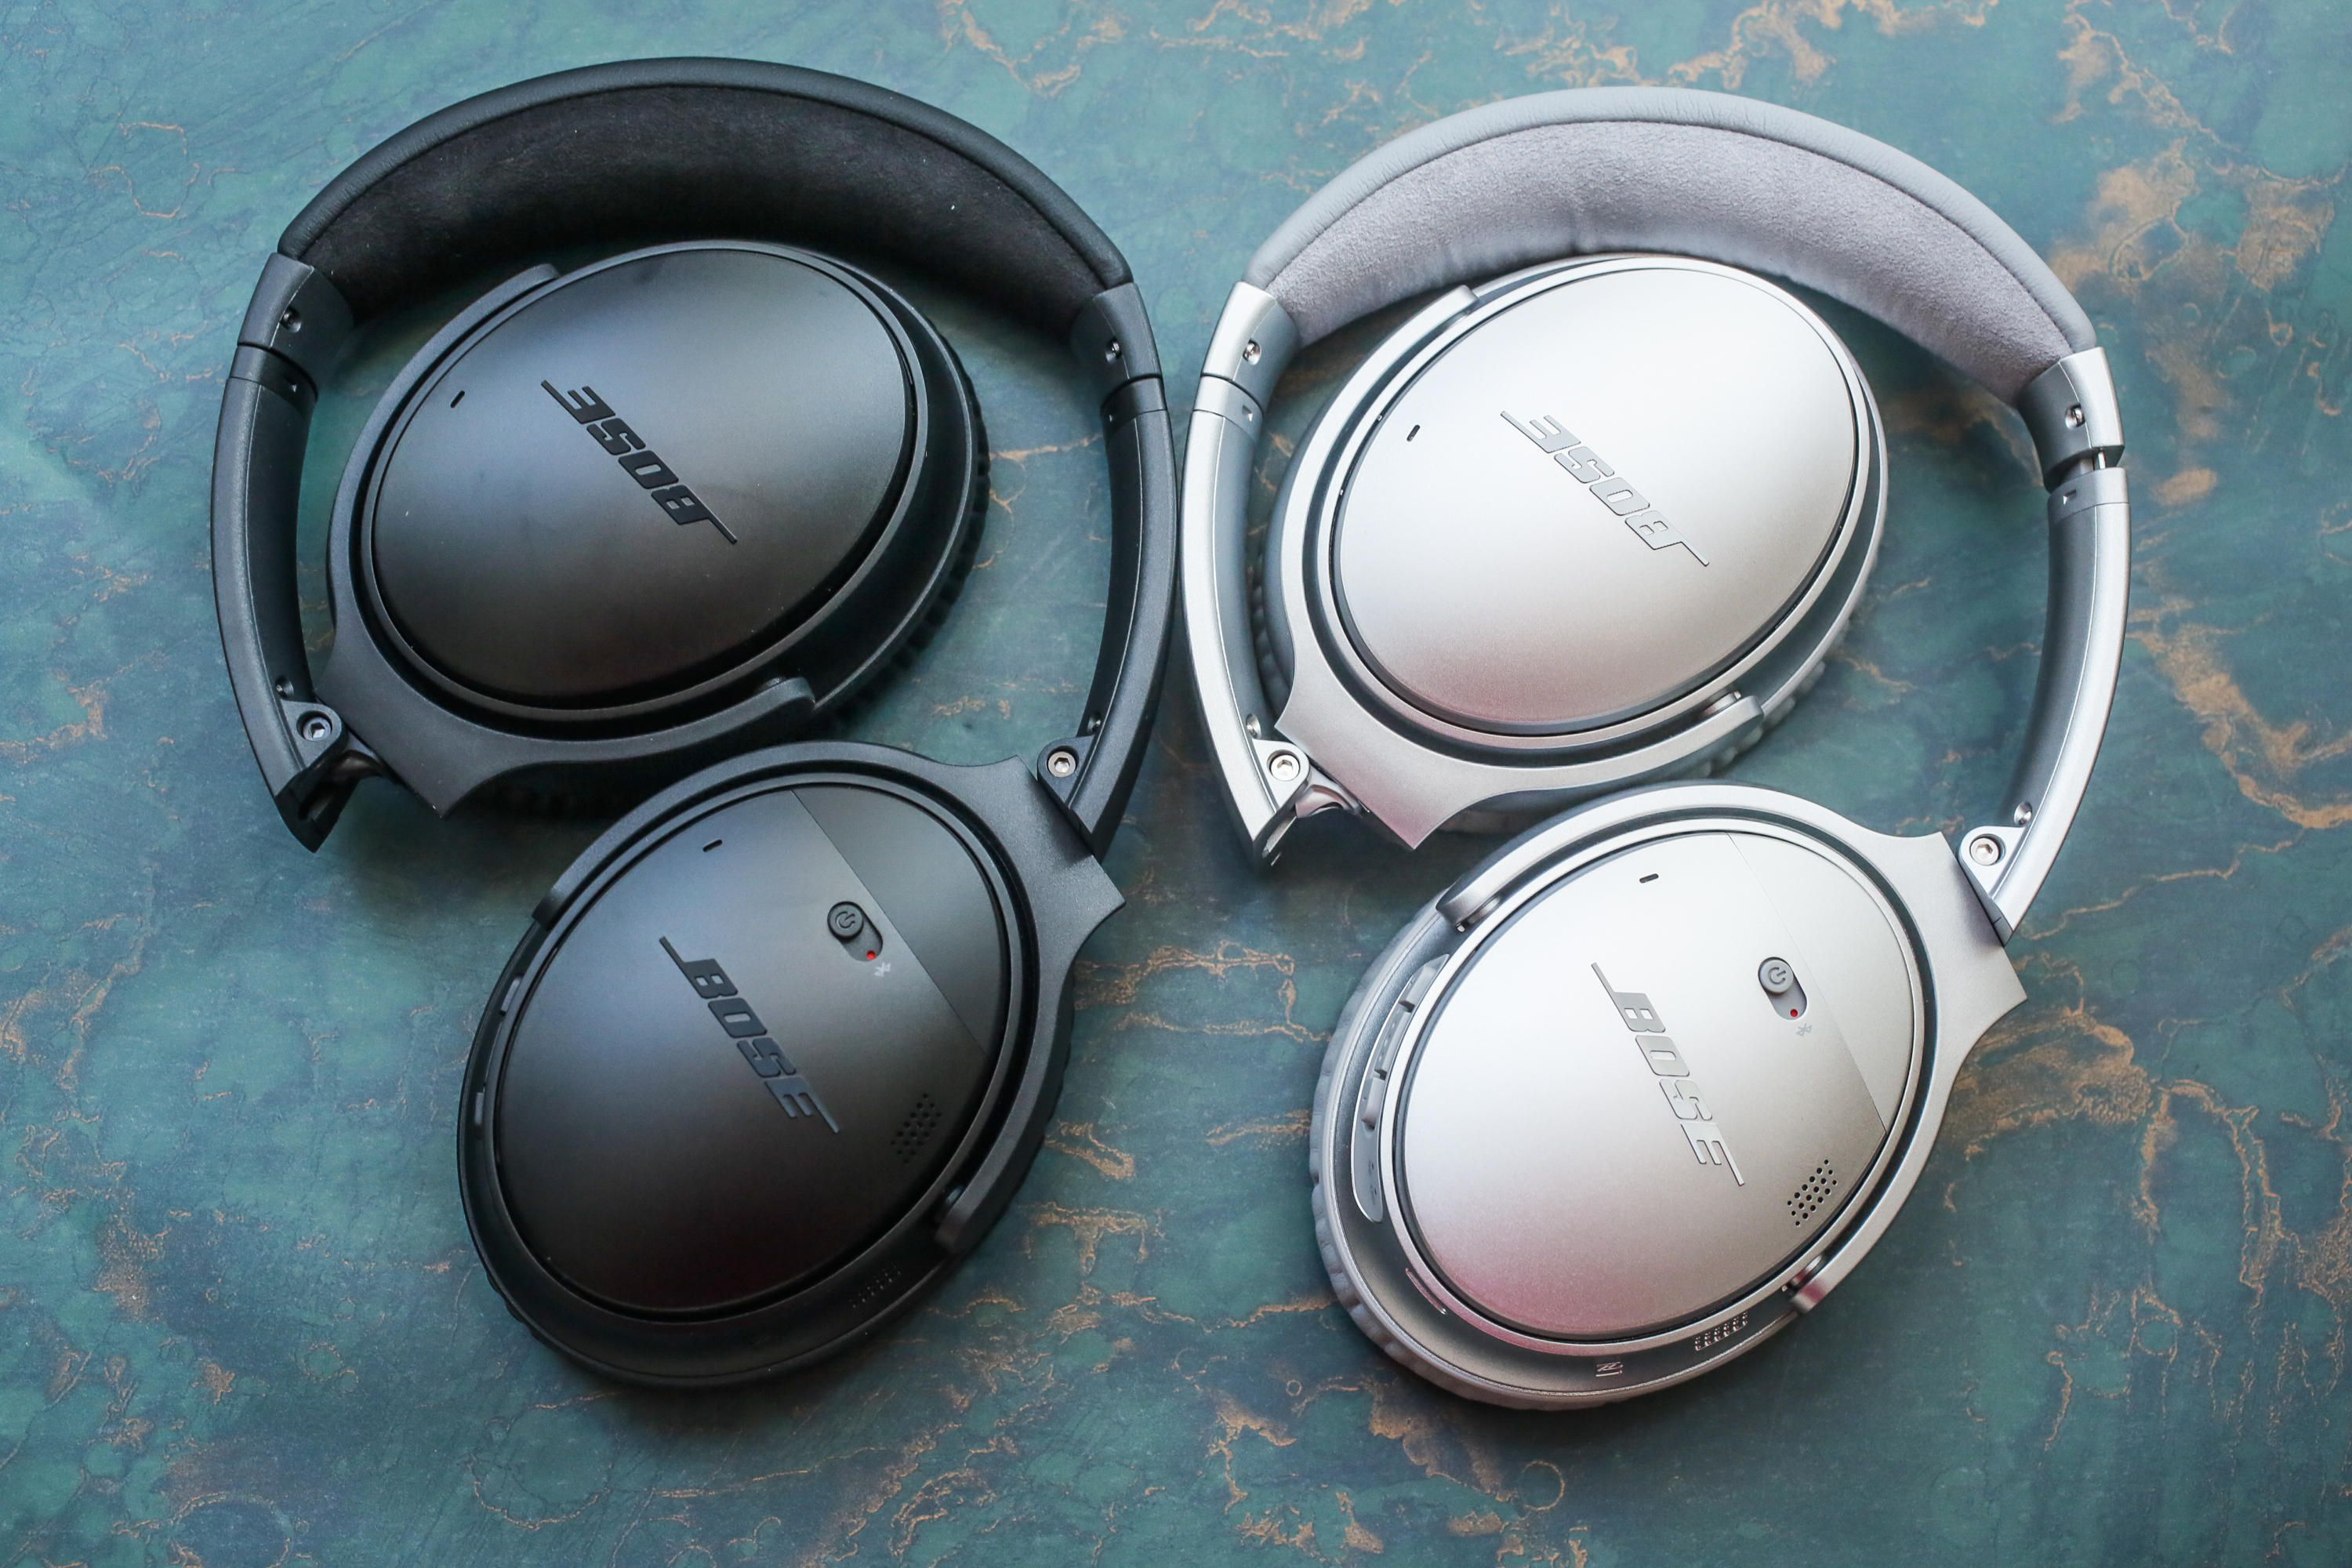 The Bose QuietCOmfort 35 II in silver and black